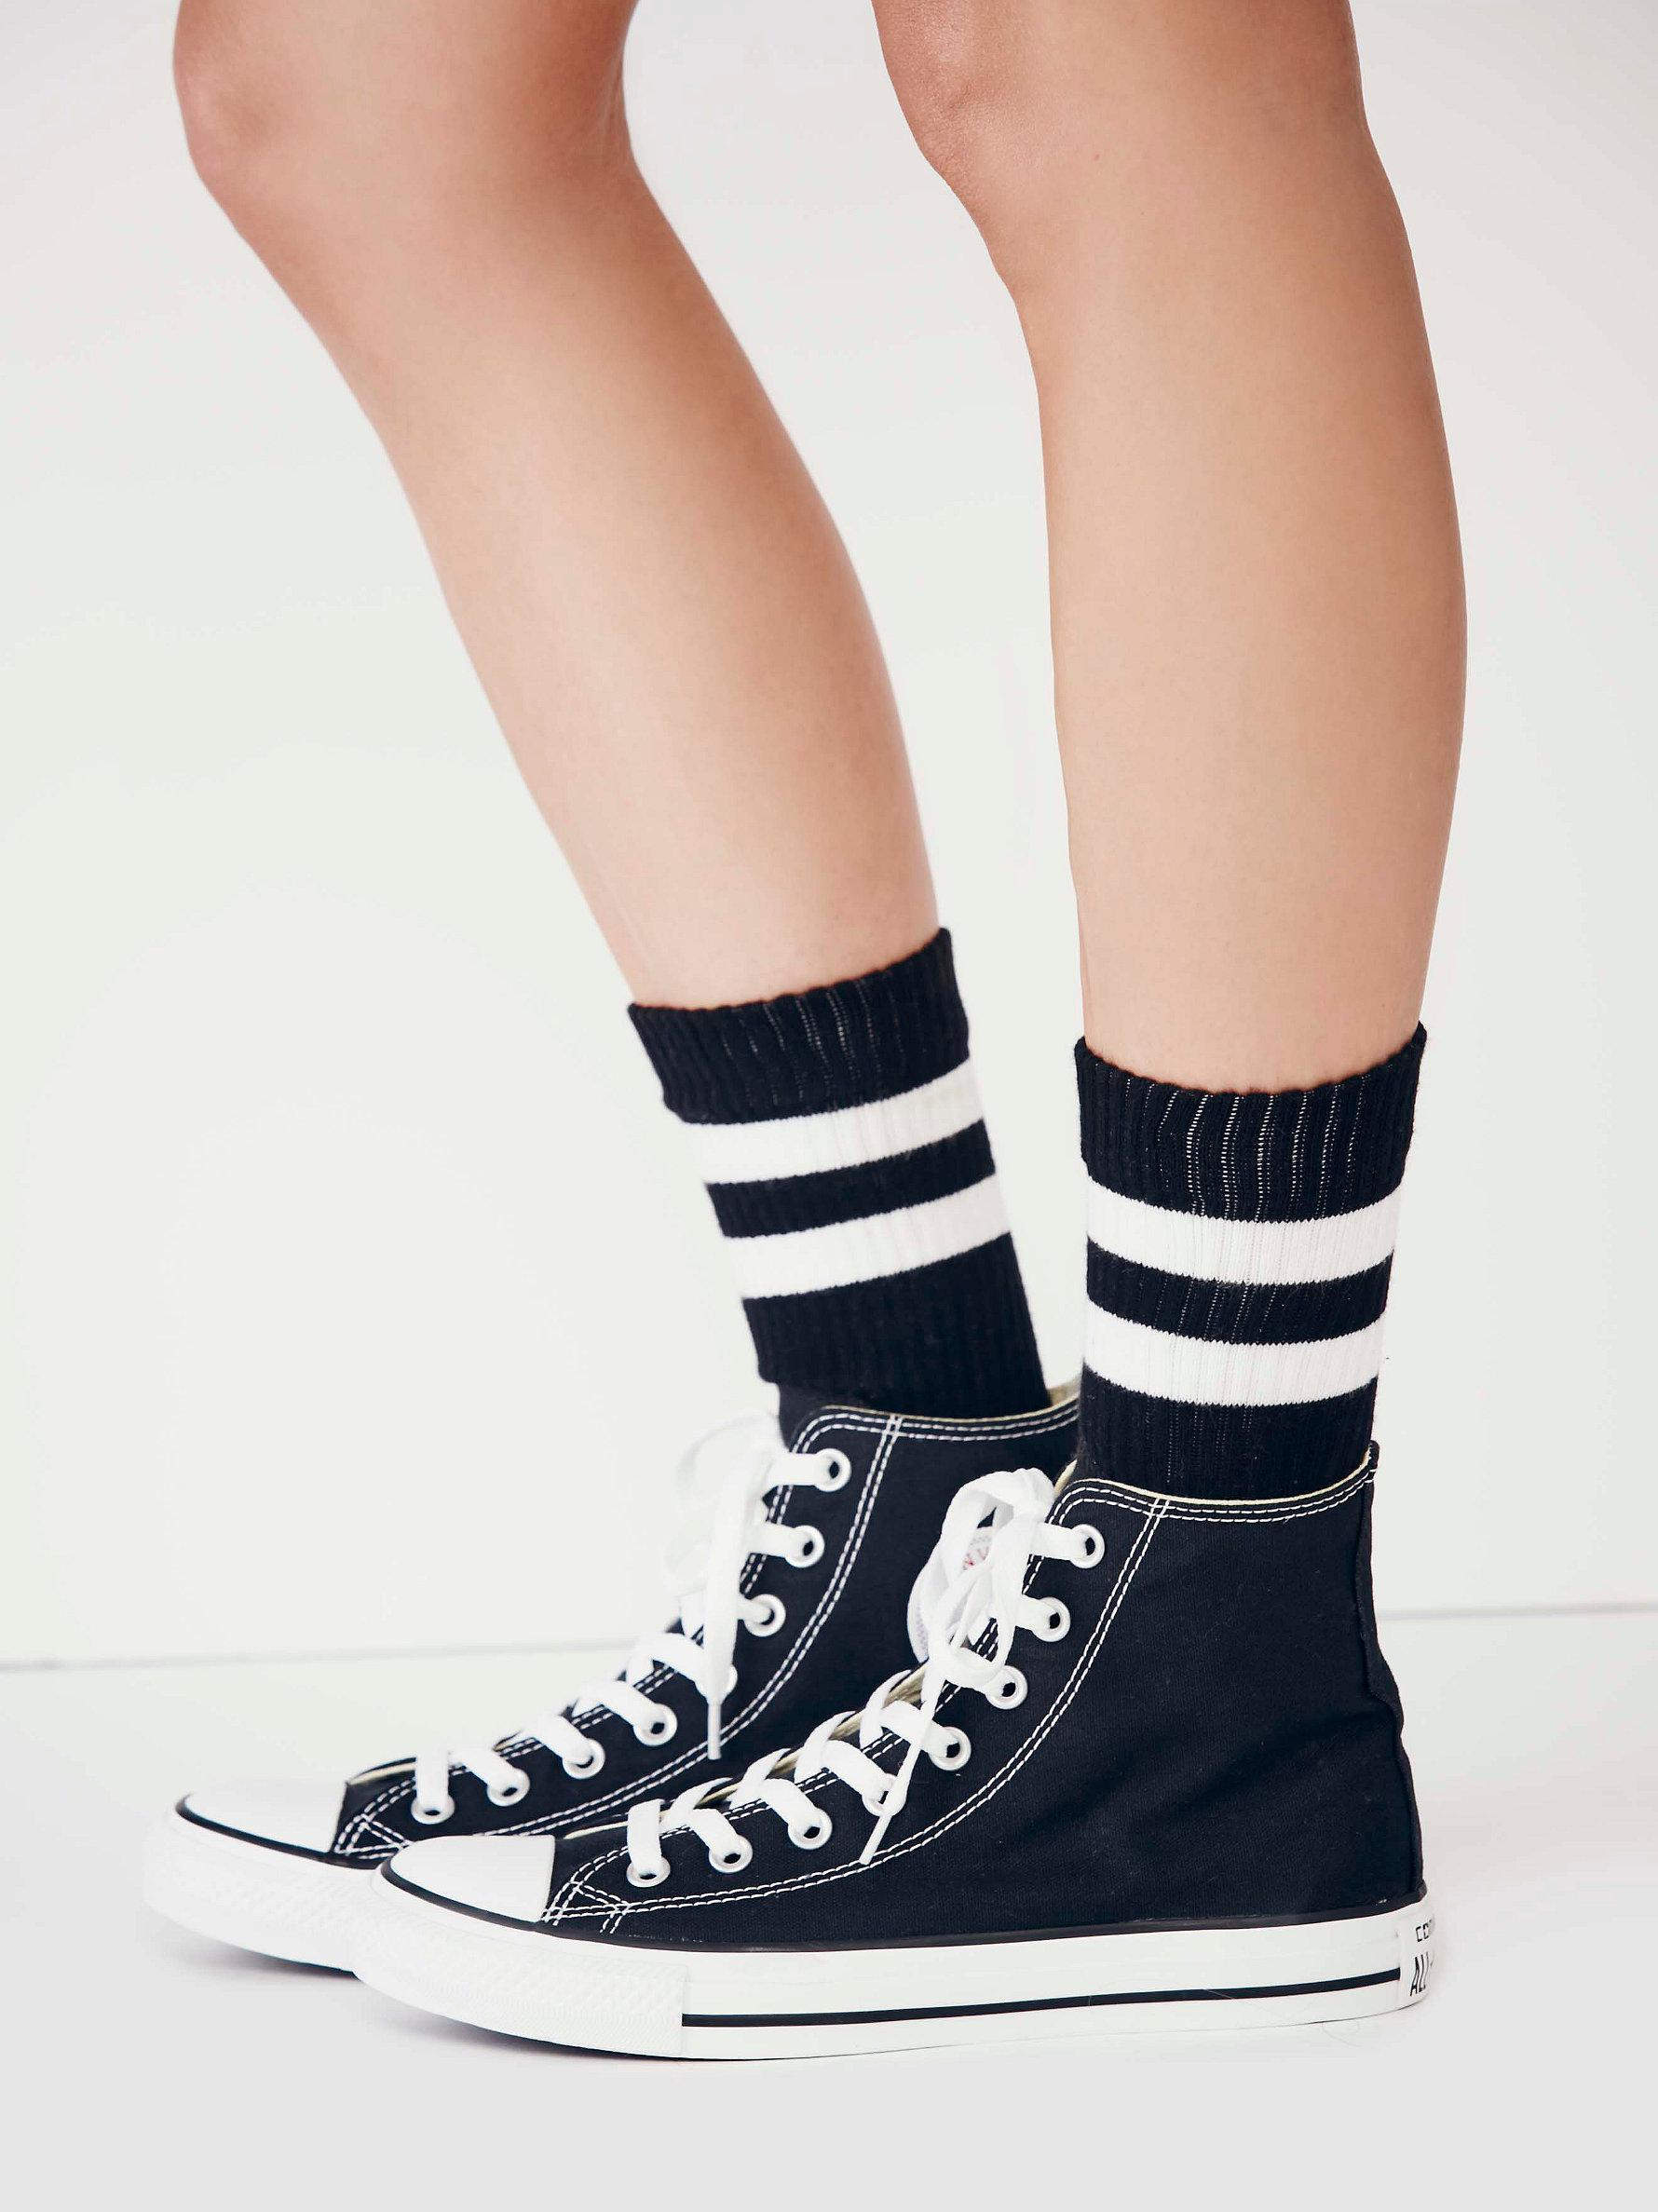 c42a1a3610d092 Lyst - Free People Charlie Hi Top Converse in Black